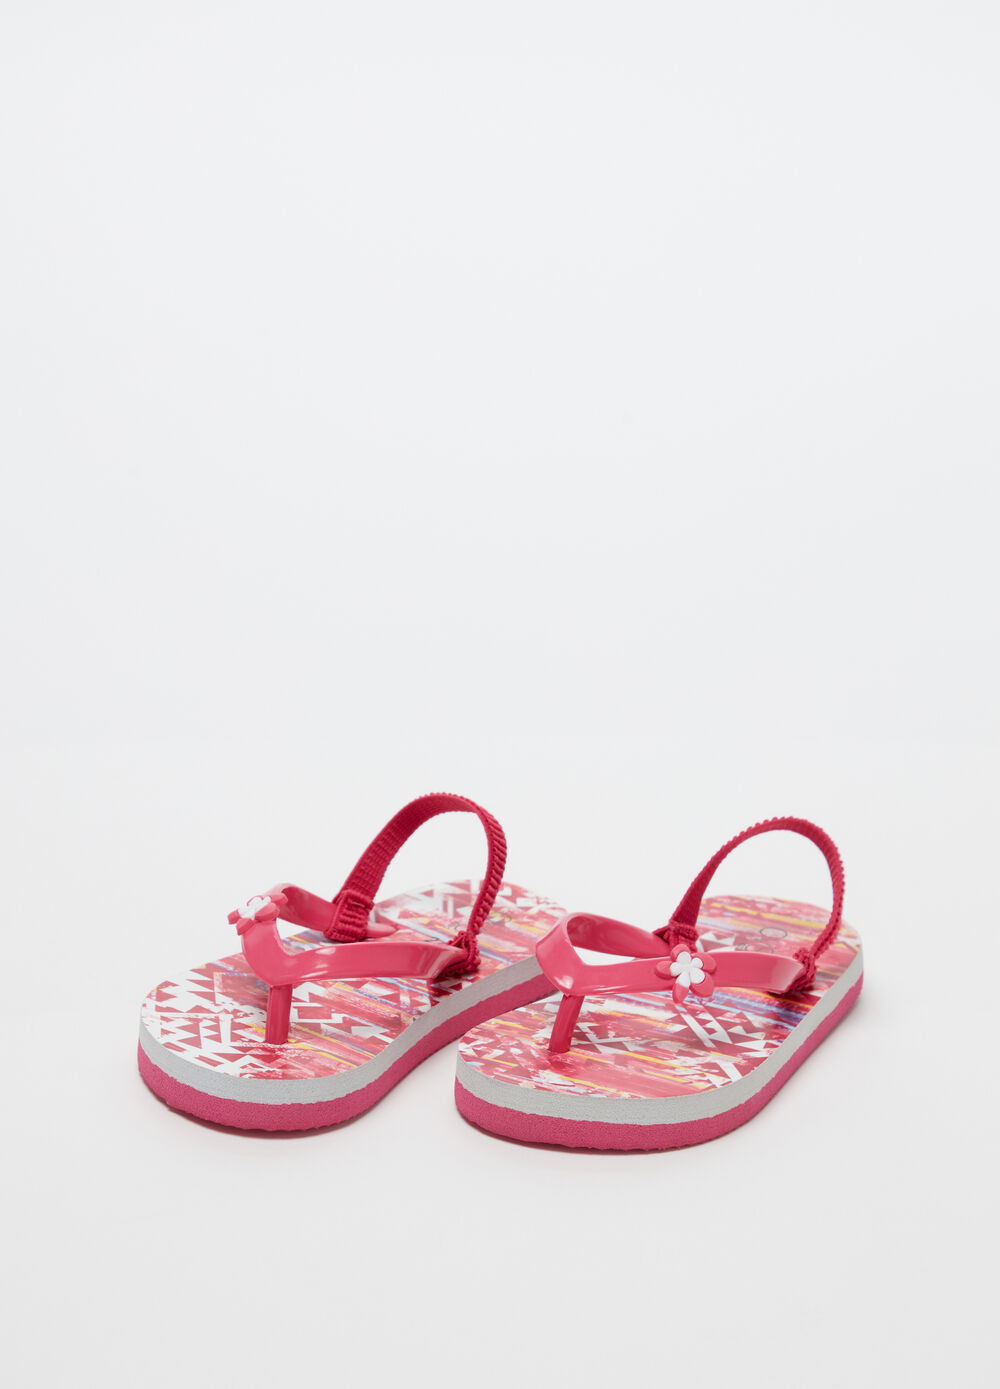 Thong sandals with flower on the laces and pattern